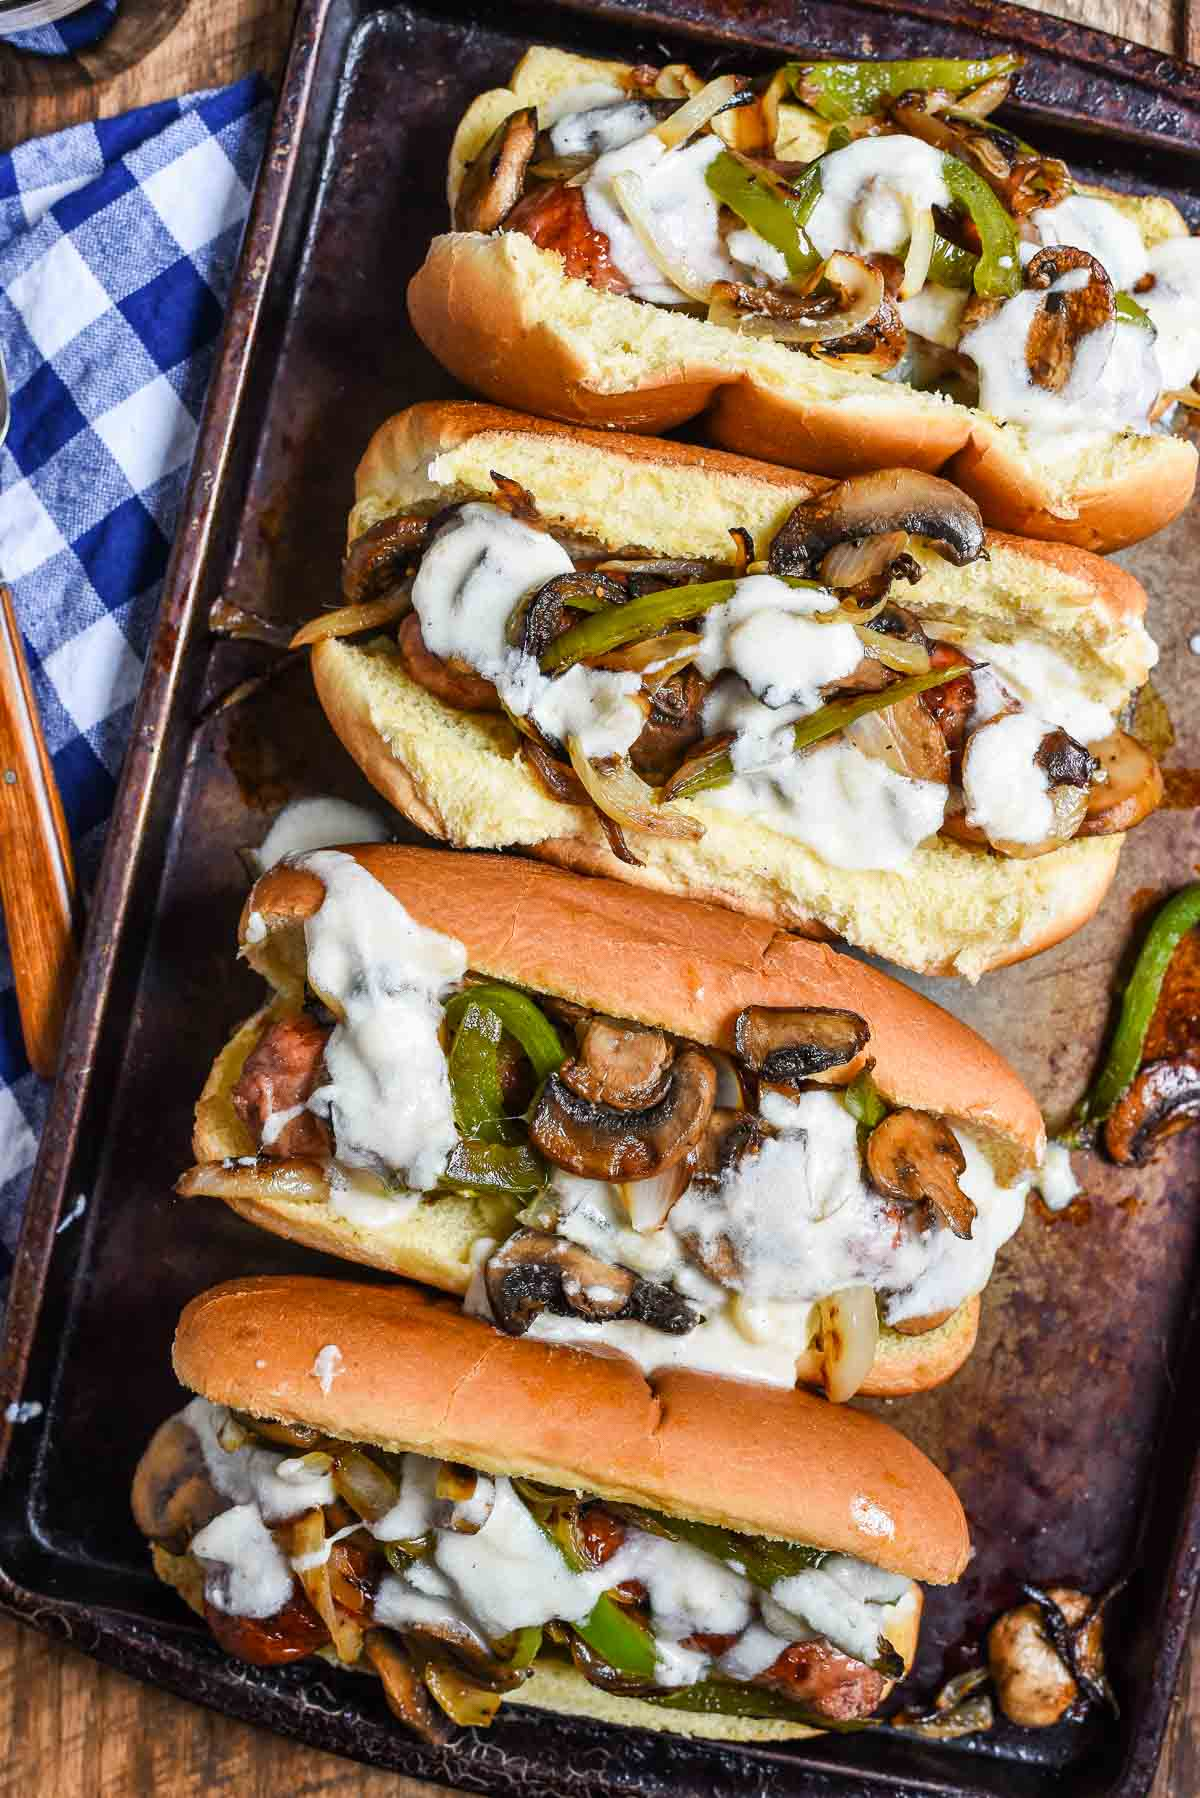 Philly Cheese Brats are a great 30 minute meal you can make almost entirely on the grill! Perfect for summer cookouts!